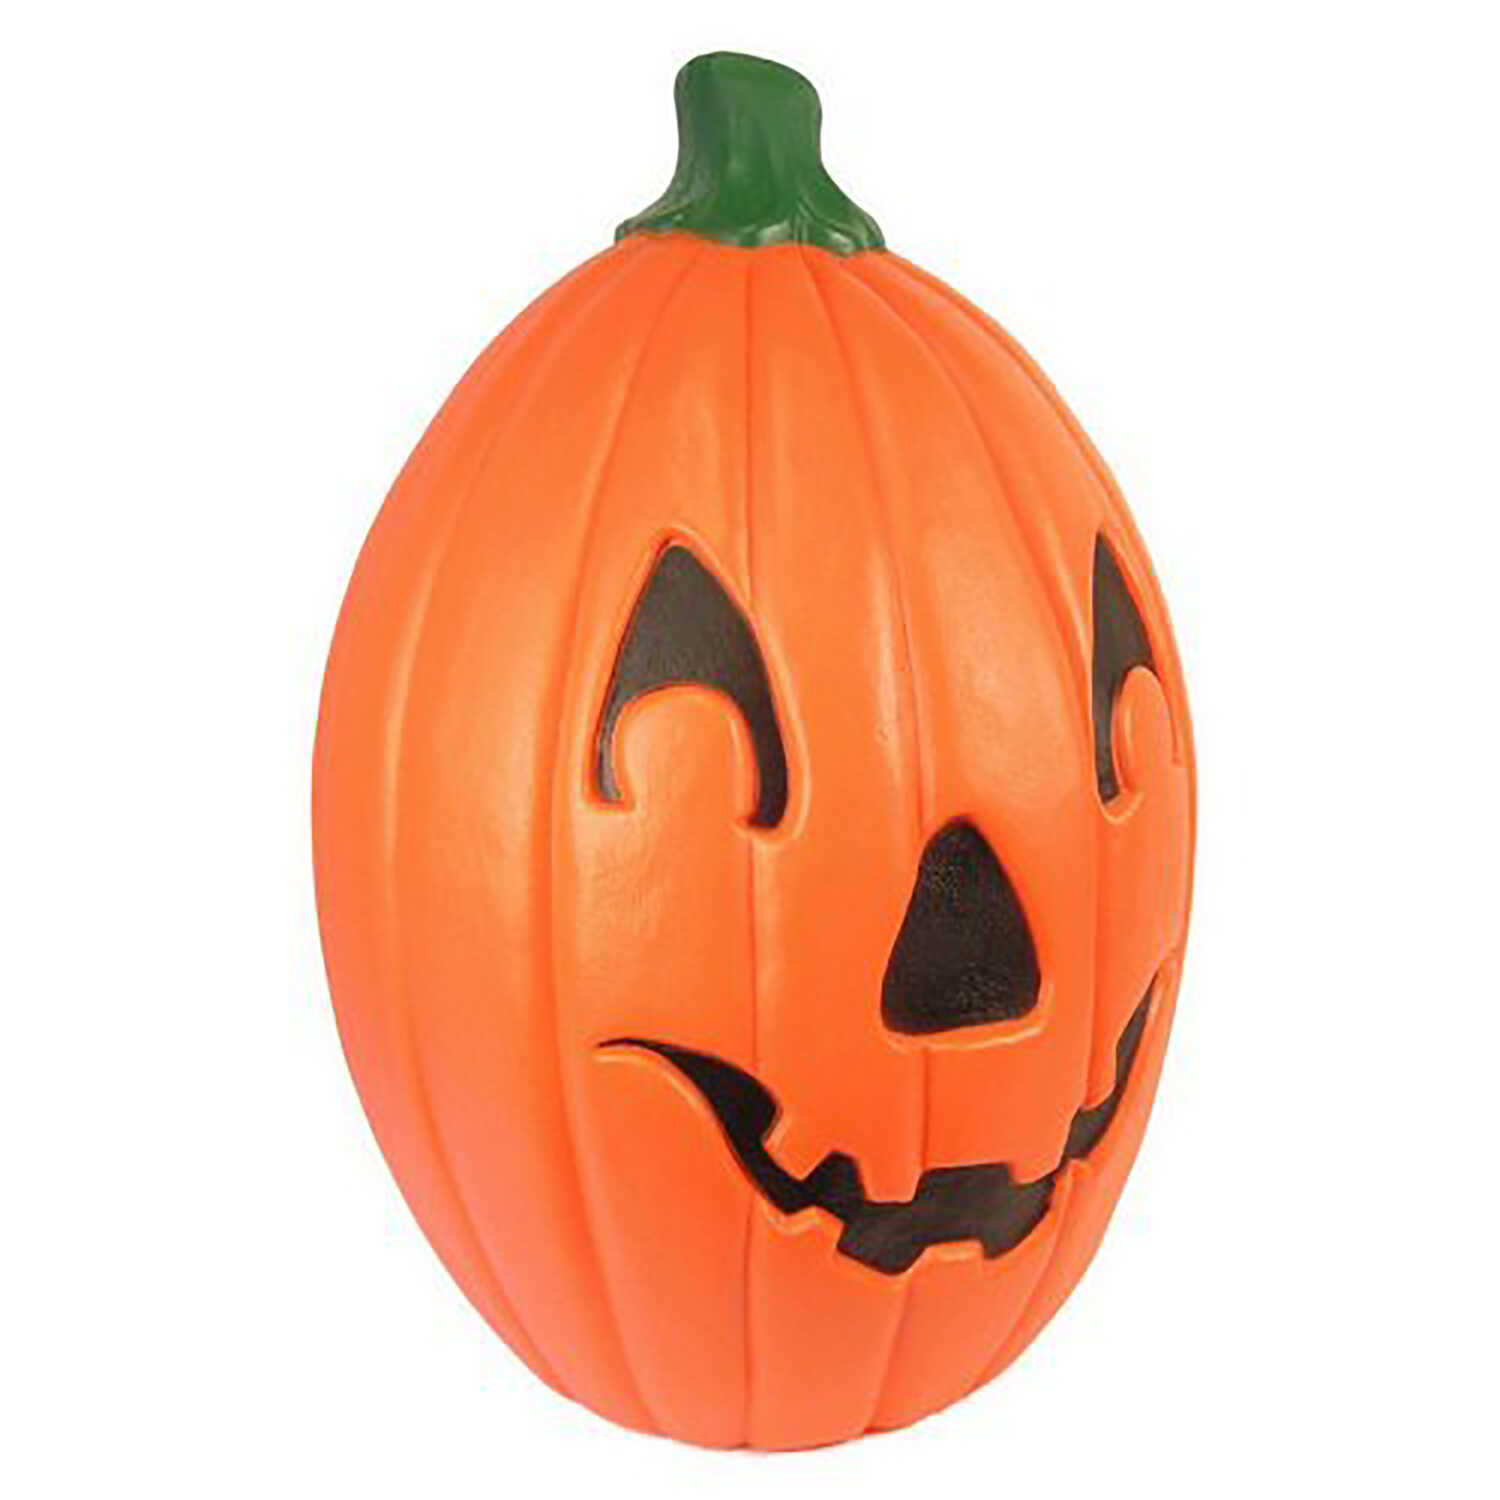 Union Products  Pumpkin Blow Mold  Lighted Halloween Decoration  22 in. H x 15.5 in. W 1 pk